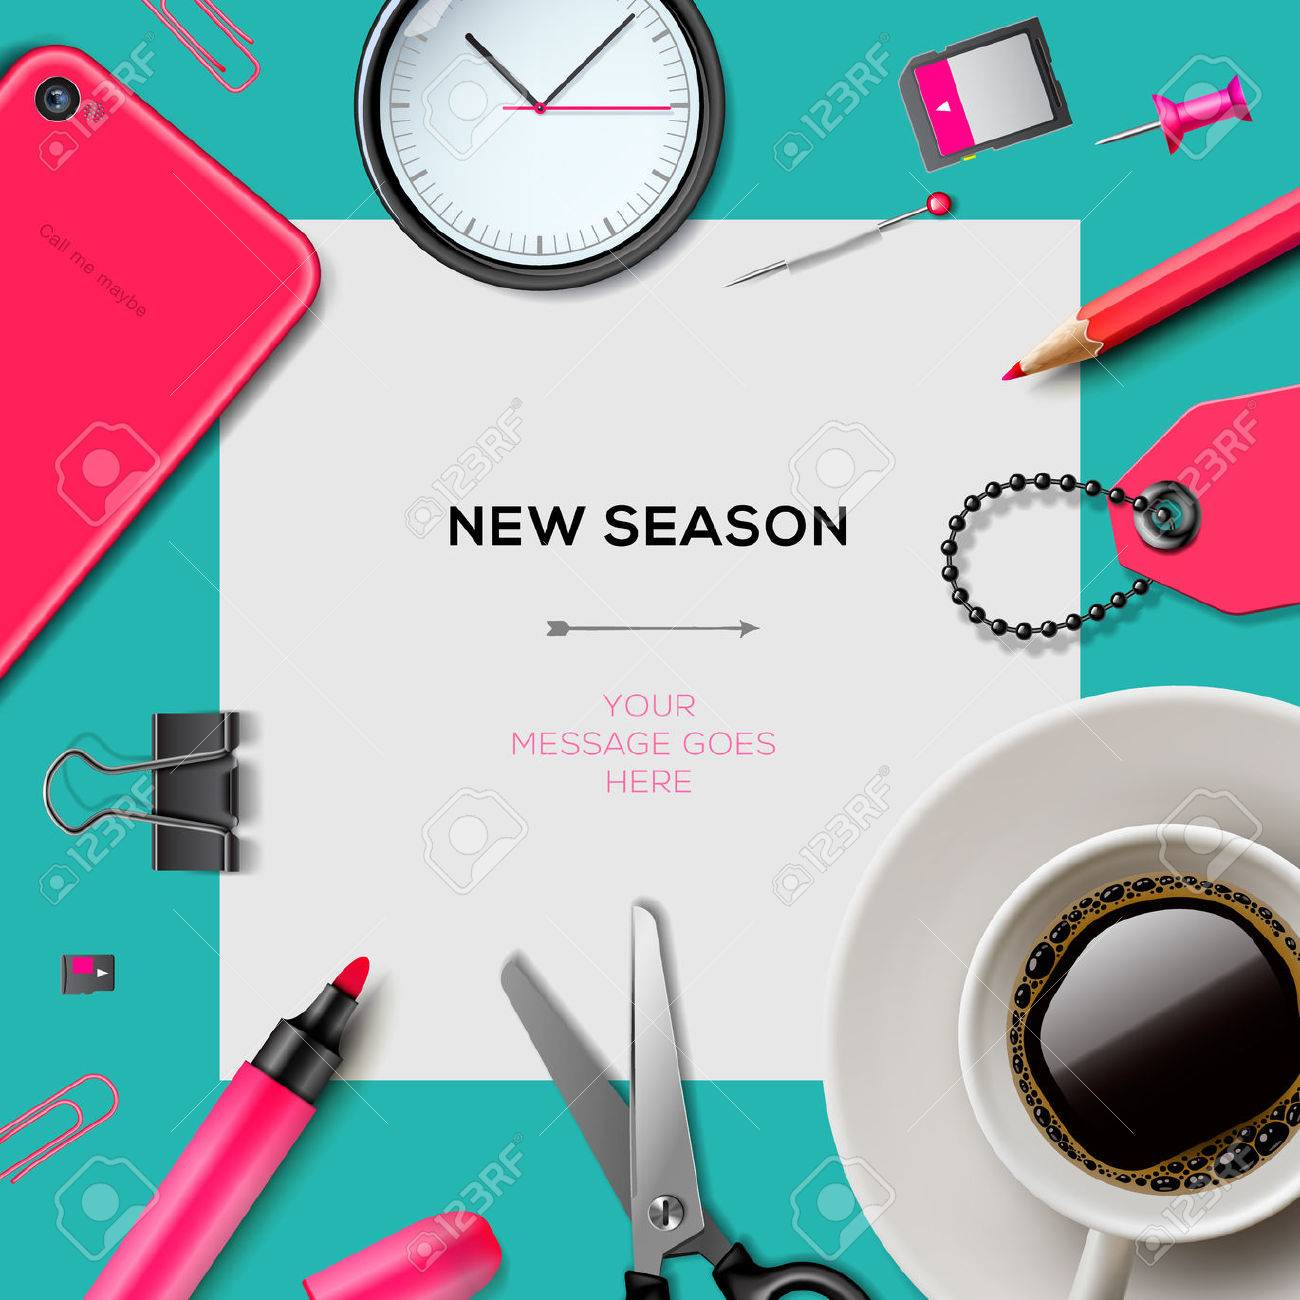 New season invitation template with office supplies royalty free new season invitation template with office supplies stock vector 27335367 stopboris Gallery